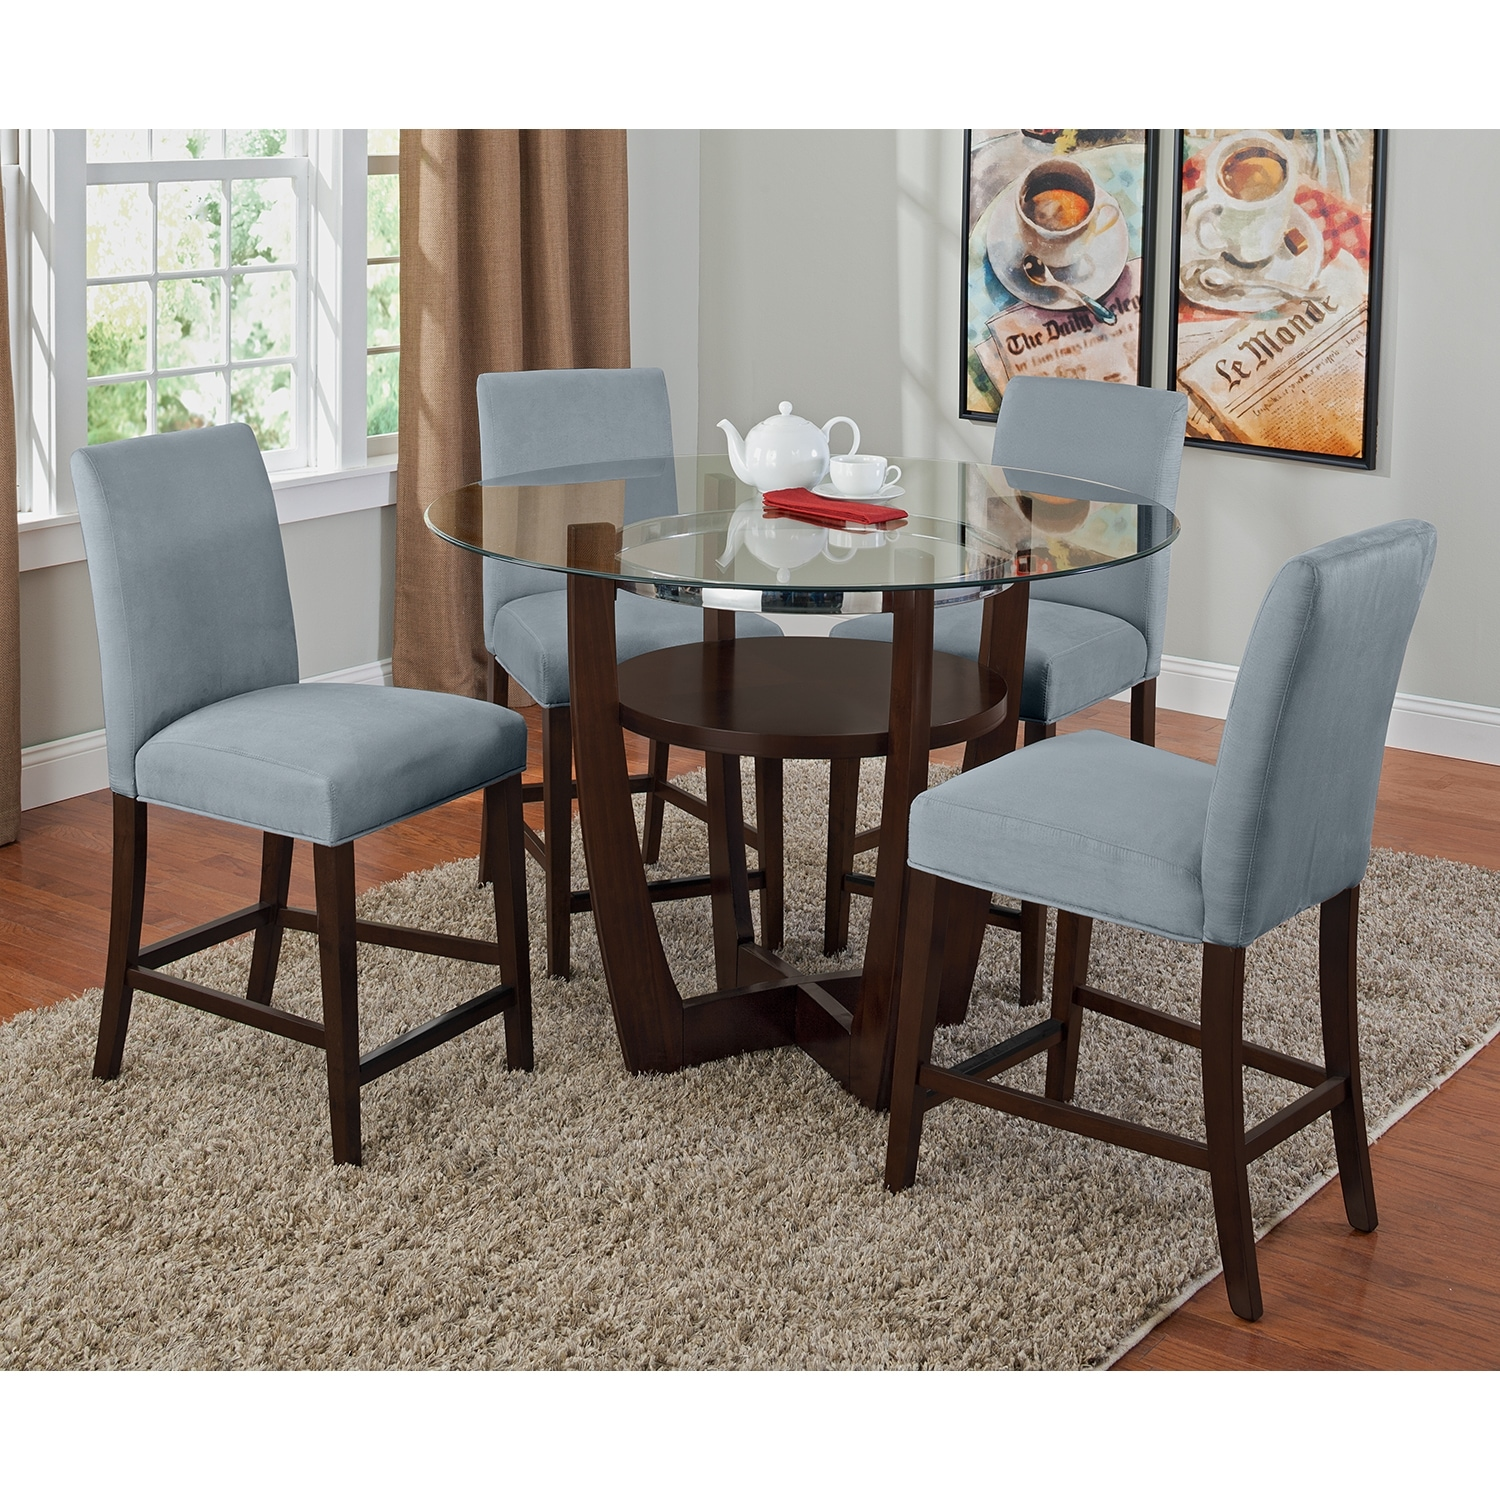 Set Of 4 Kitchen Counter Height Chairs With Microfiber: Alcove Counter-Height Stool - Aqua